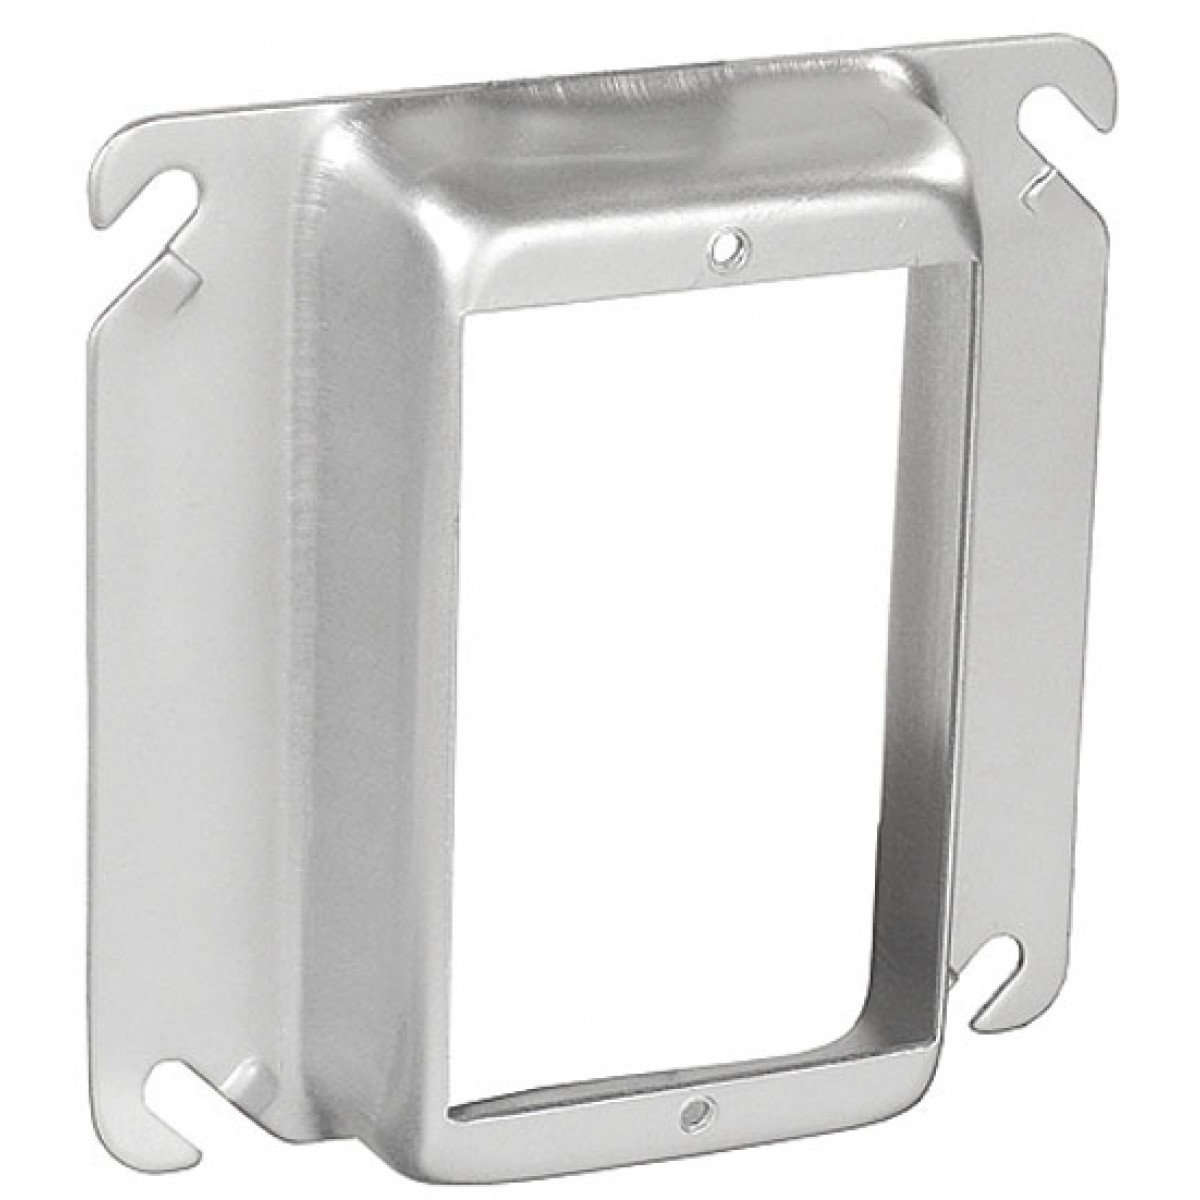 2 Pcs, 304 Stainless Steel 4'' Square One Gang Device Ring, 1 In. Raised Used w/4In Square Electrical Boxes to Provide Easy Way to Mount Switches, Receptacles & Devices